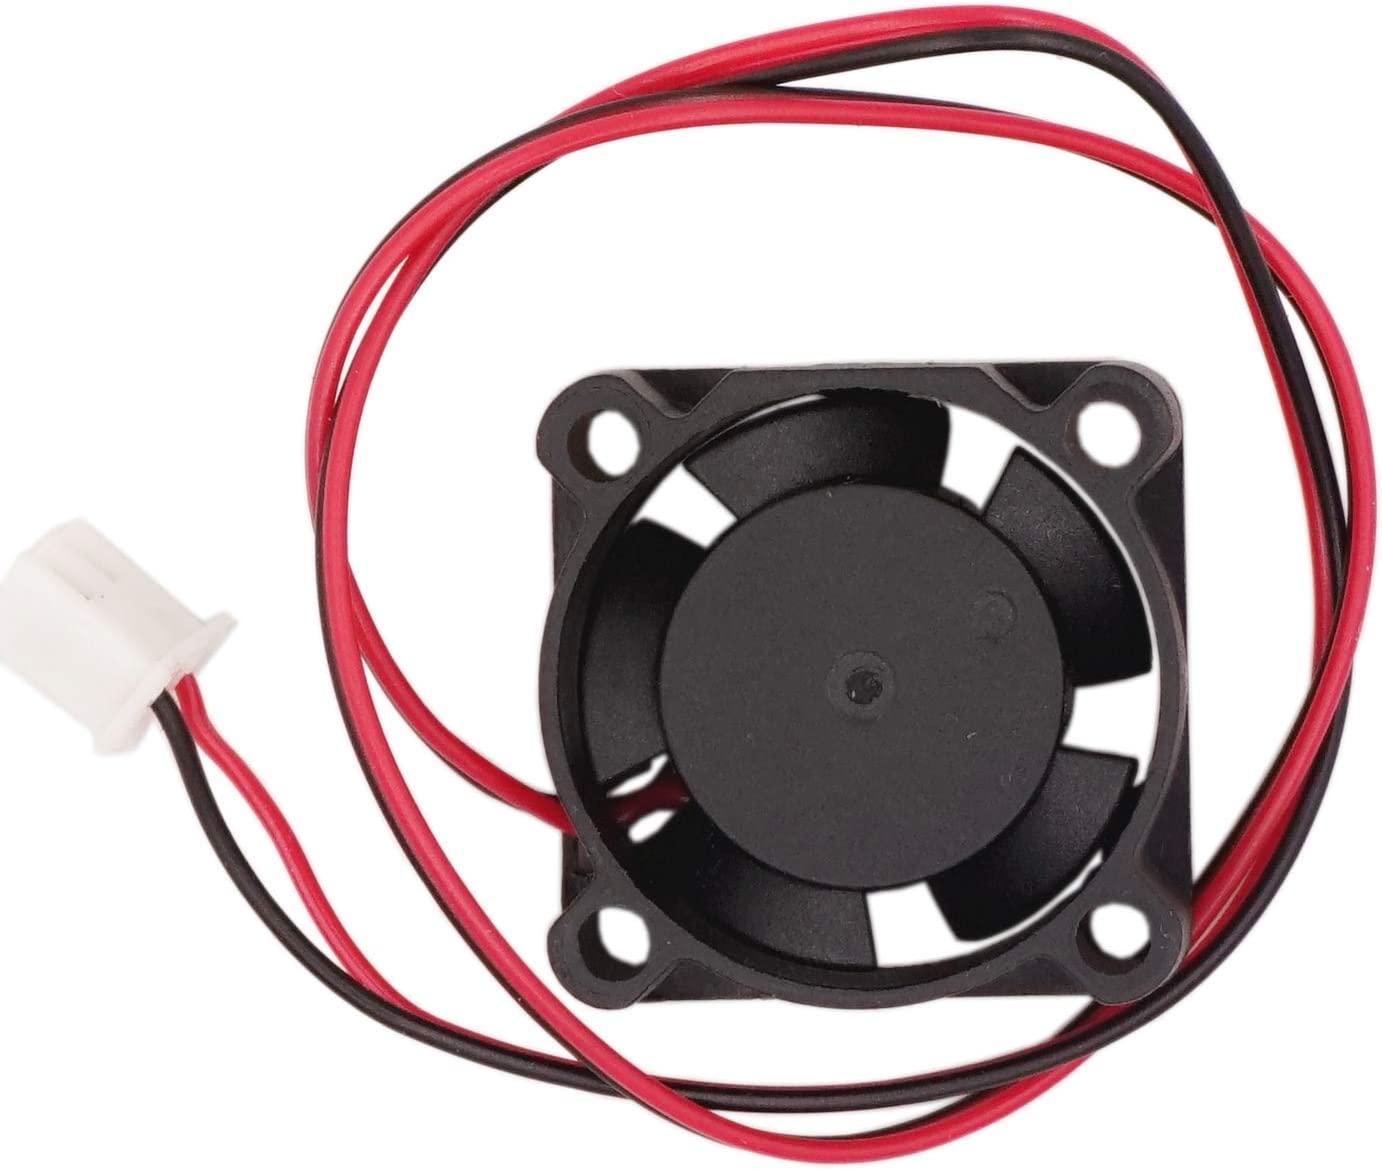 WINSINN 25mm Fan 12V Hydraulic Bearing Brushless 2510 25x10mm for DIY Mini Cooling PCB//Notebook//Graphics Card Pack of 5Pcs High Speed